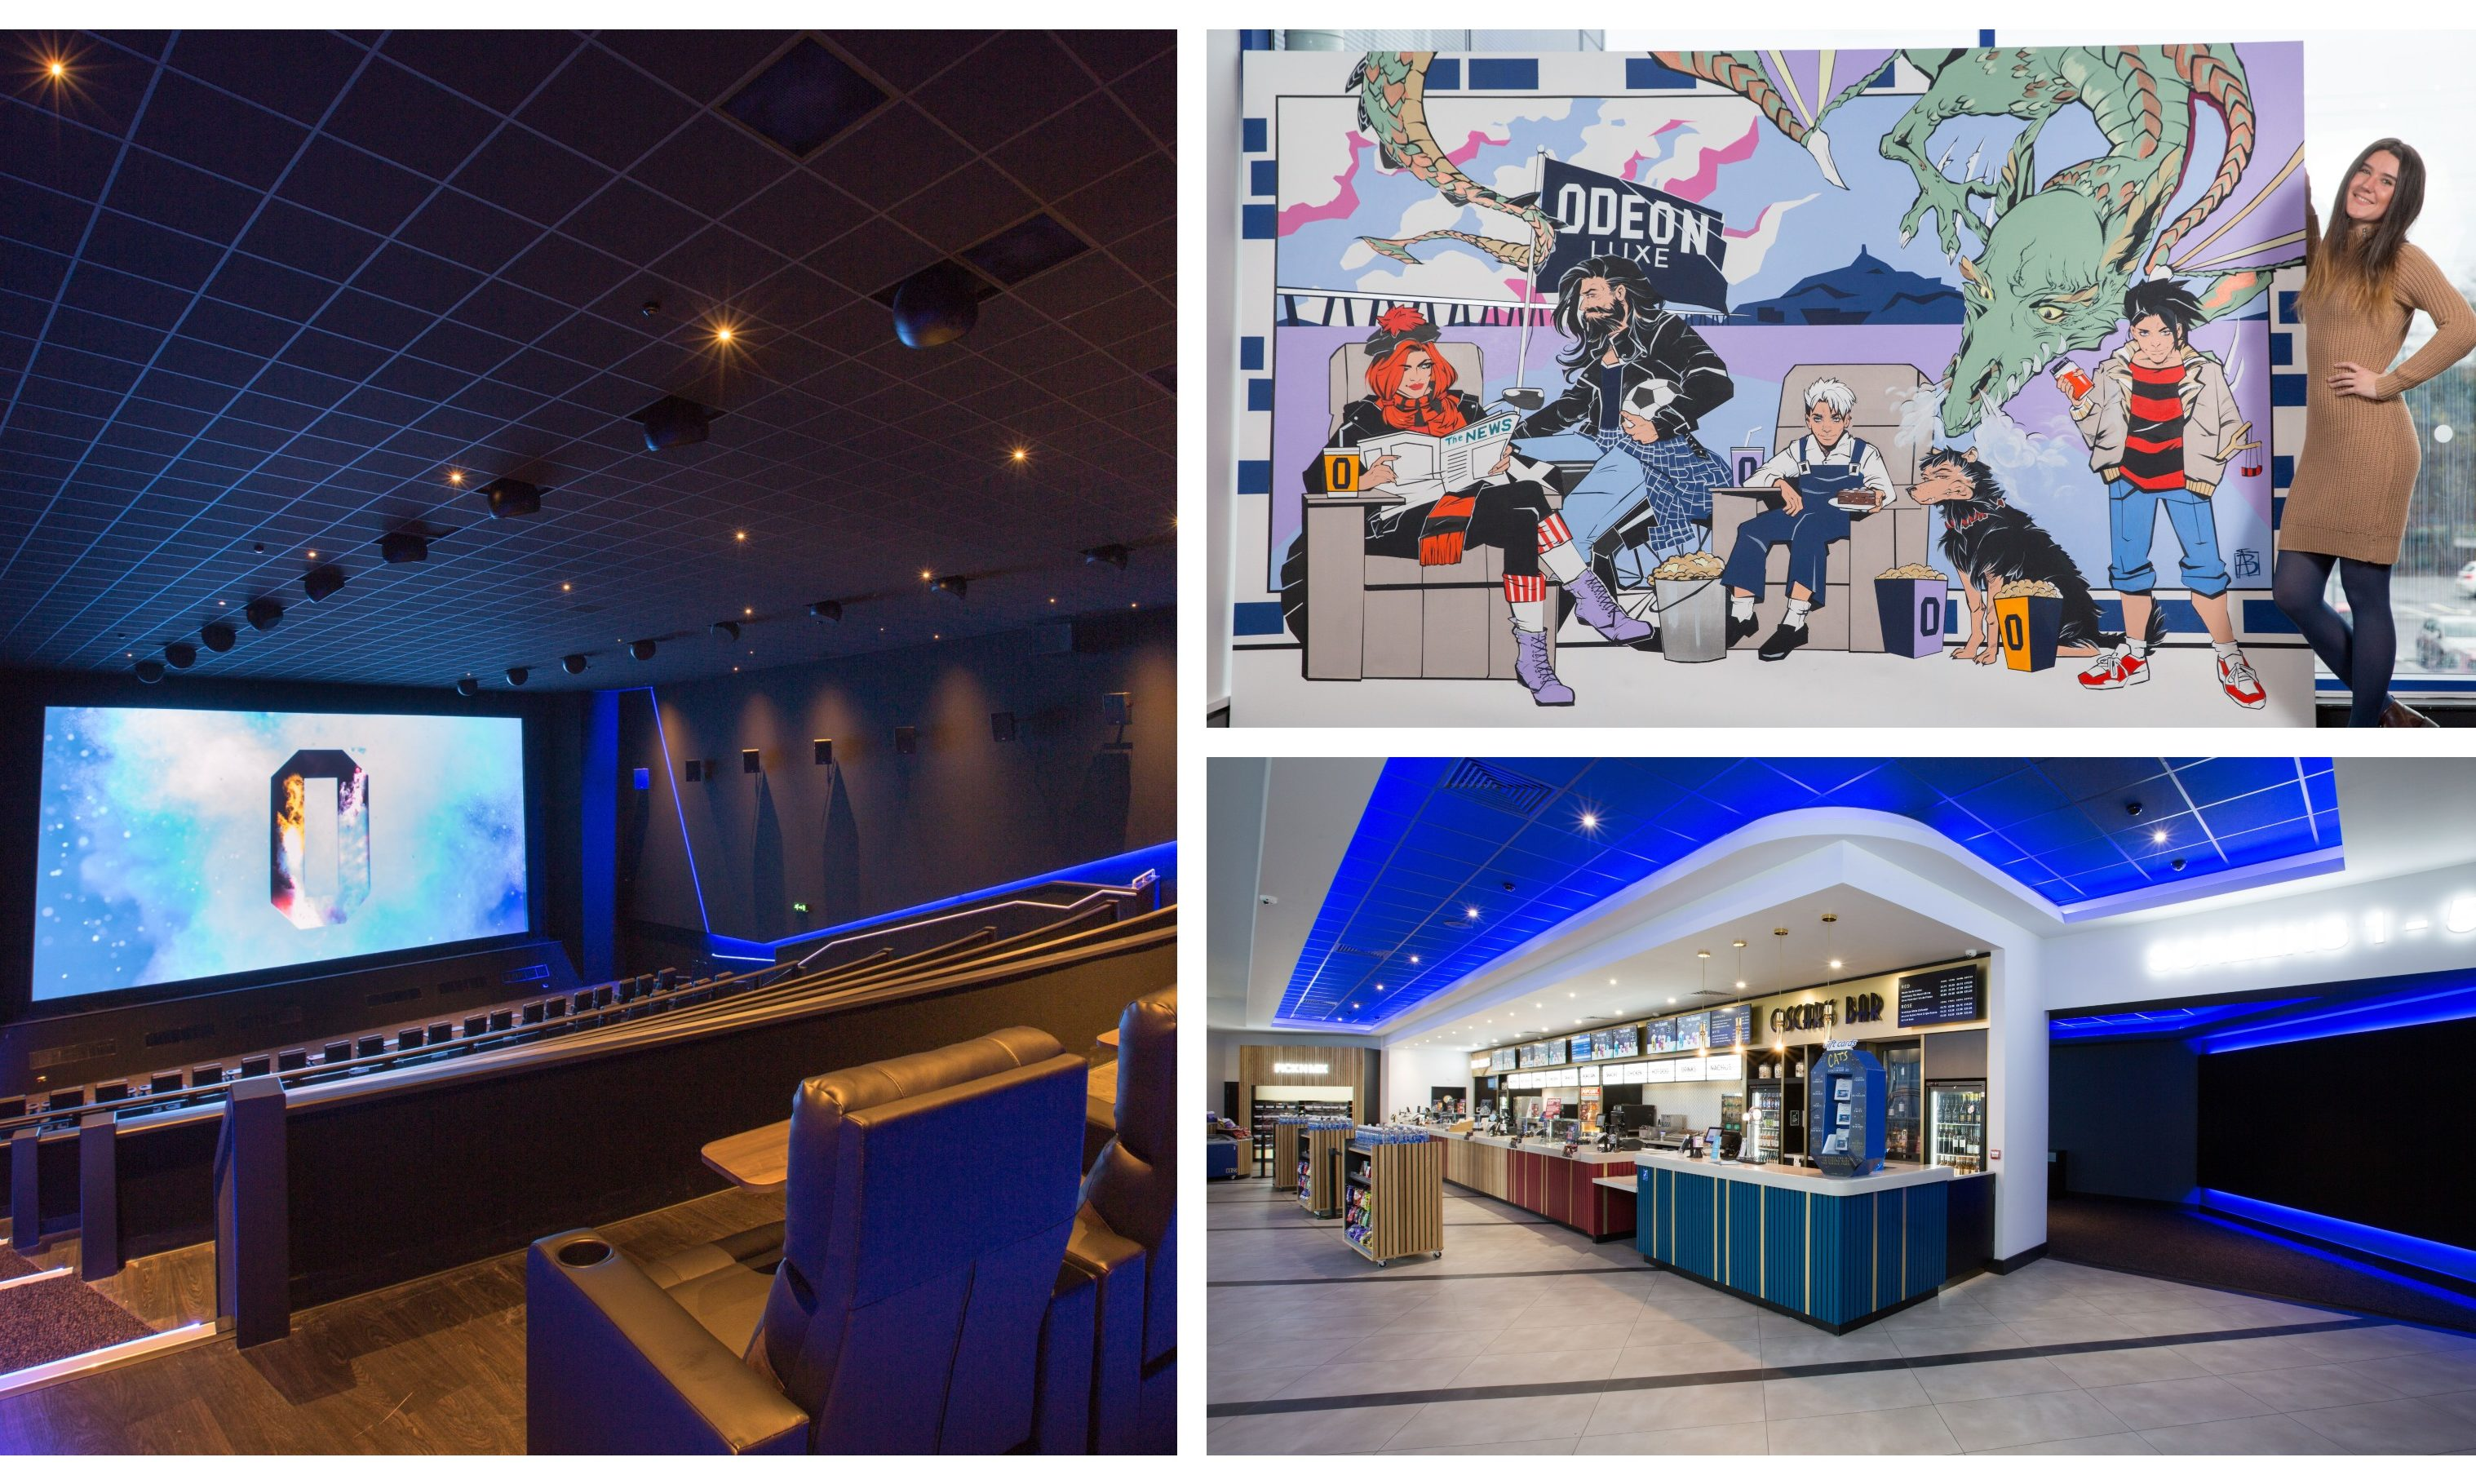 The Odeon in Douglas has reopened.